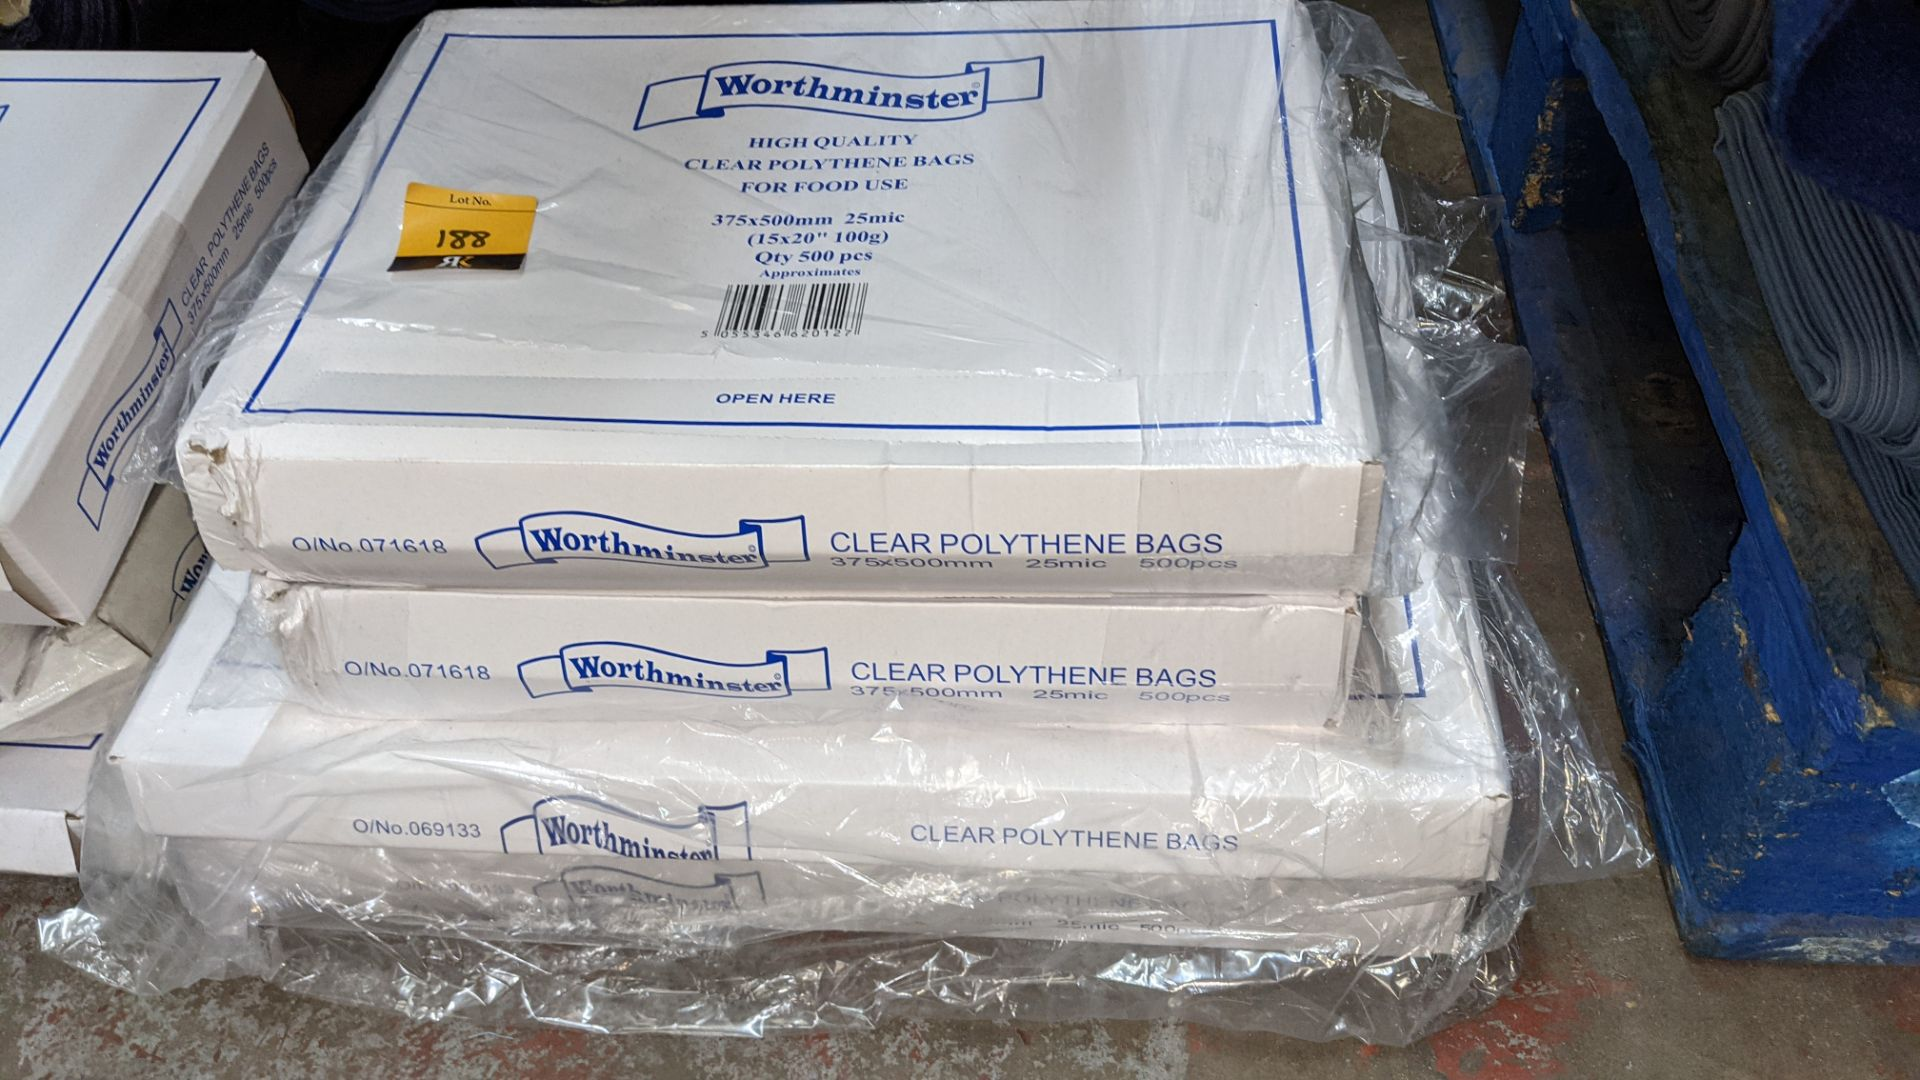 4 boxes of clear food bags by Worthminster